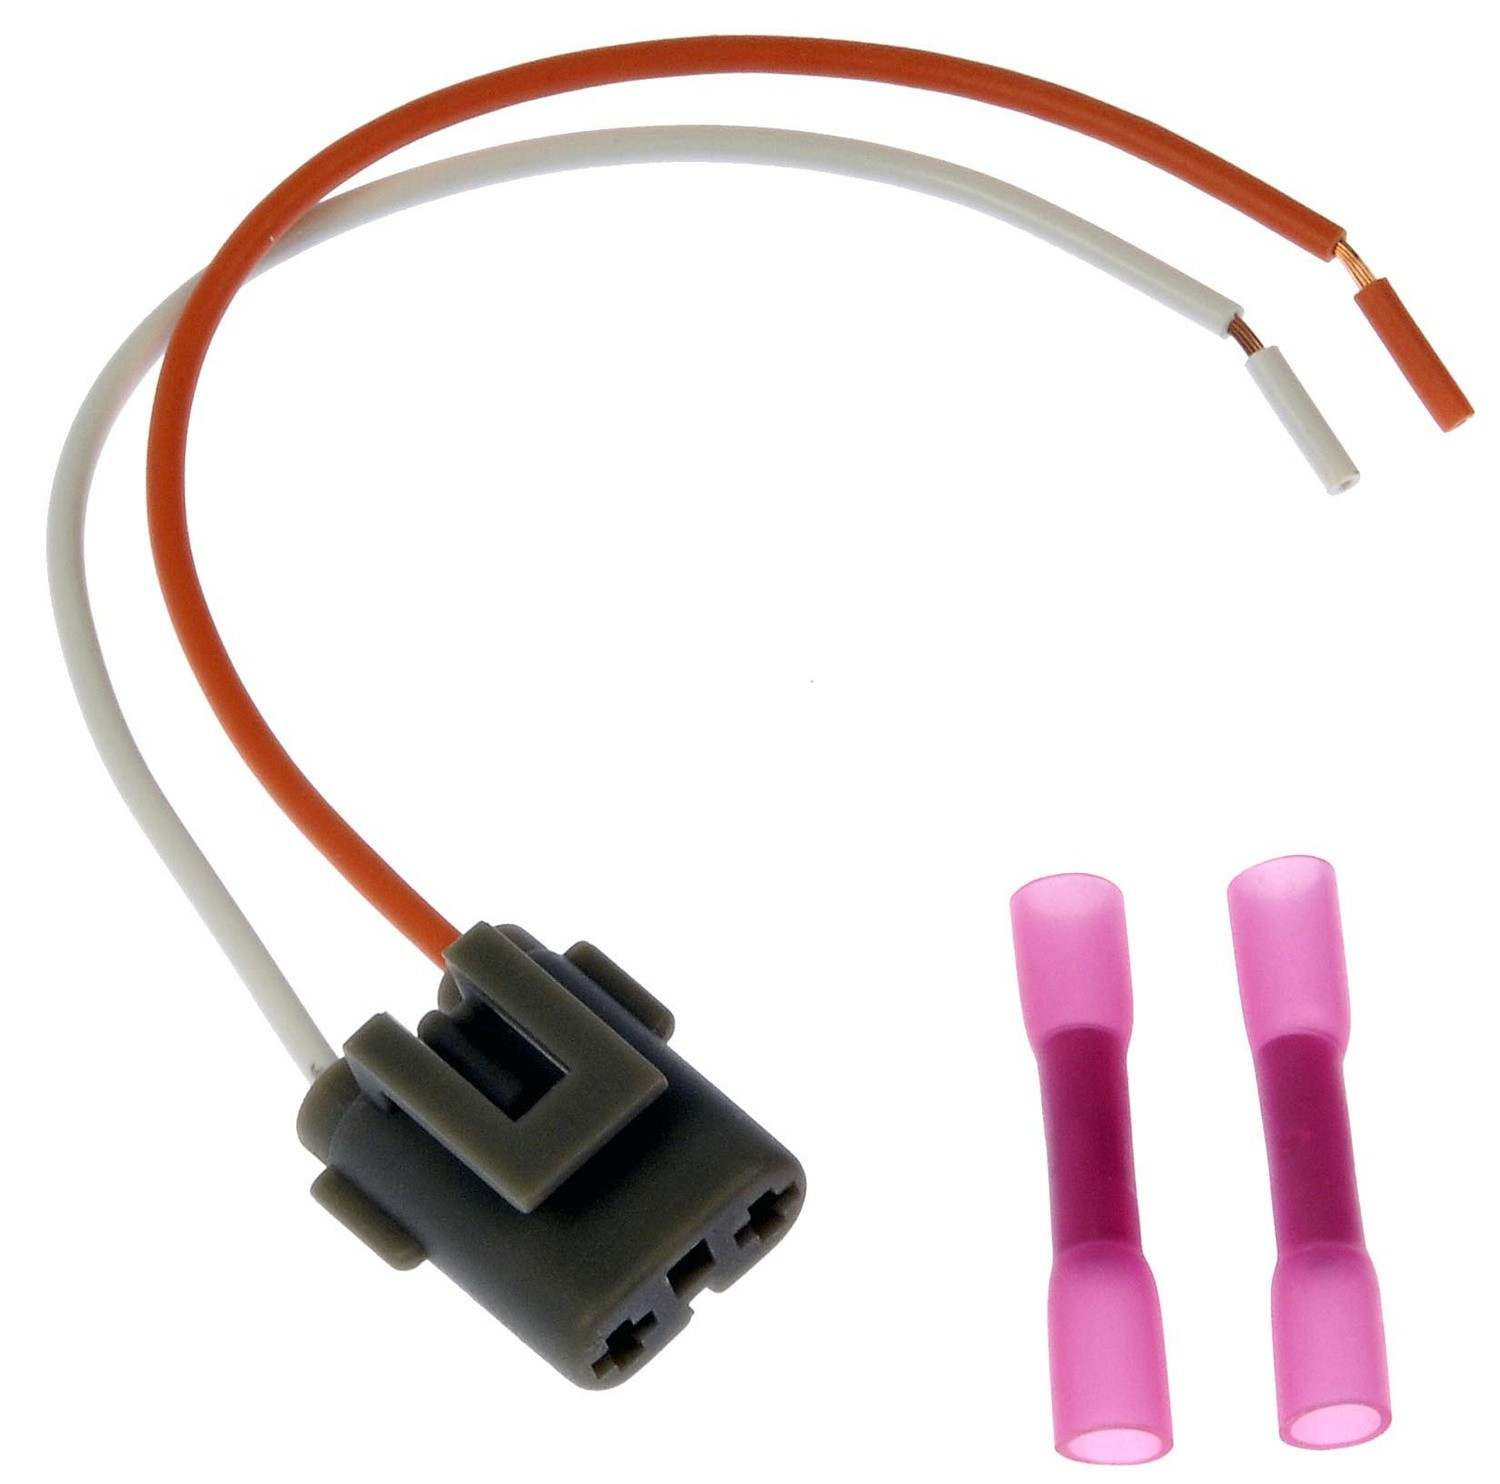 Dorman Techoice Headlight Connector Part Number 645 201 Dormanr 923009 Right Tail Light Circuit Board Dtc